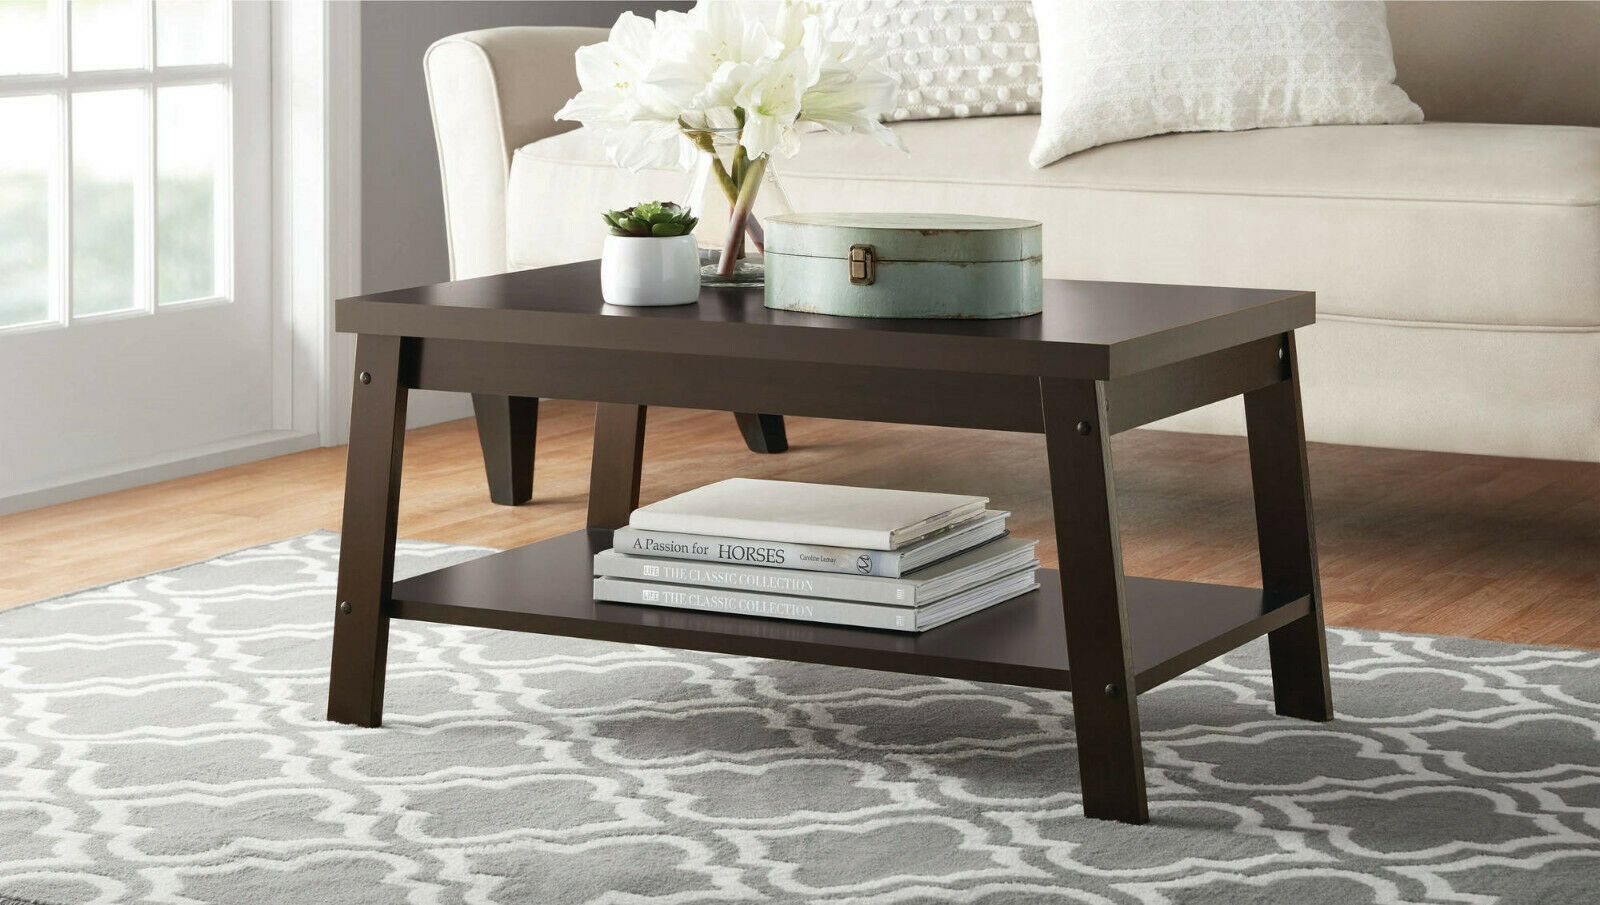 Southampton Wood Veneer Coffee Table Espresso For Sale Online Ebay